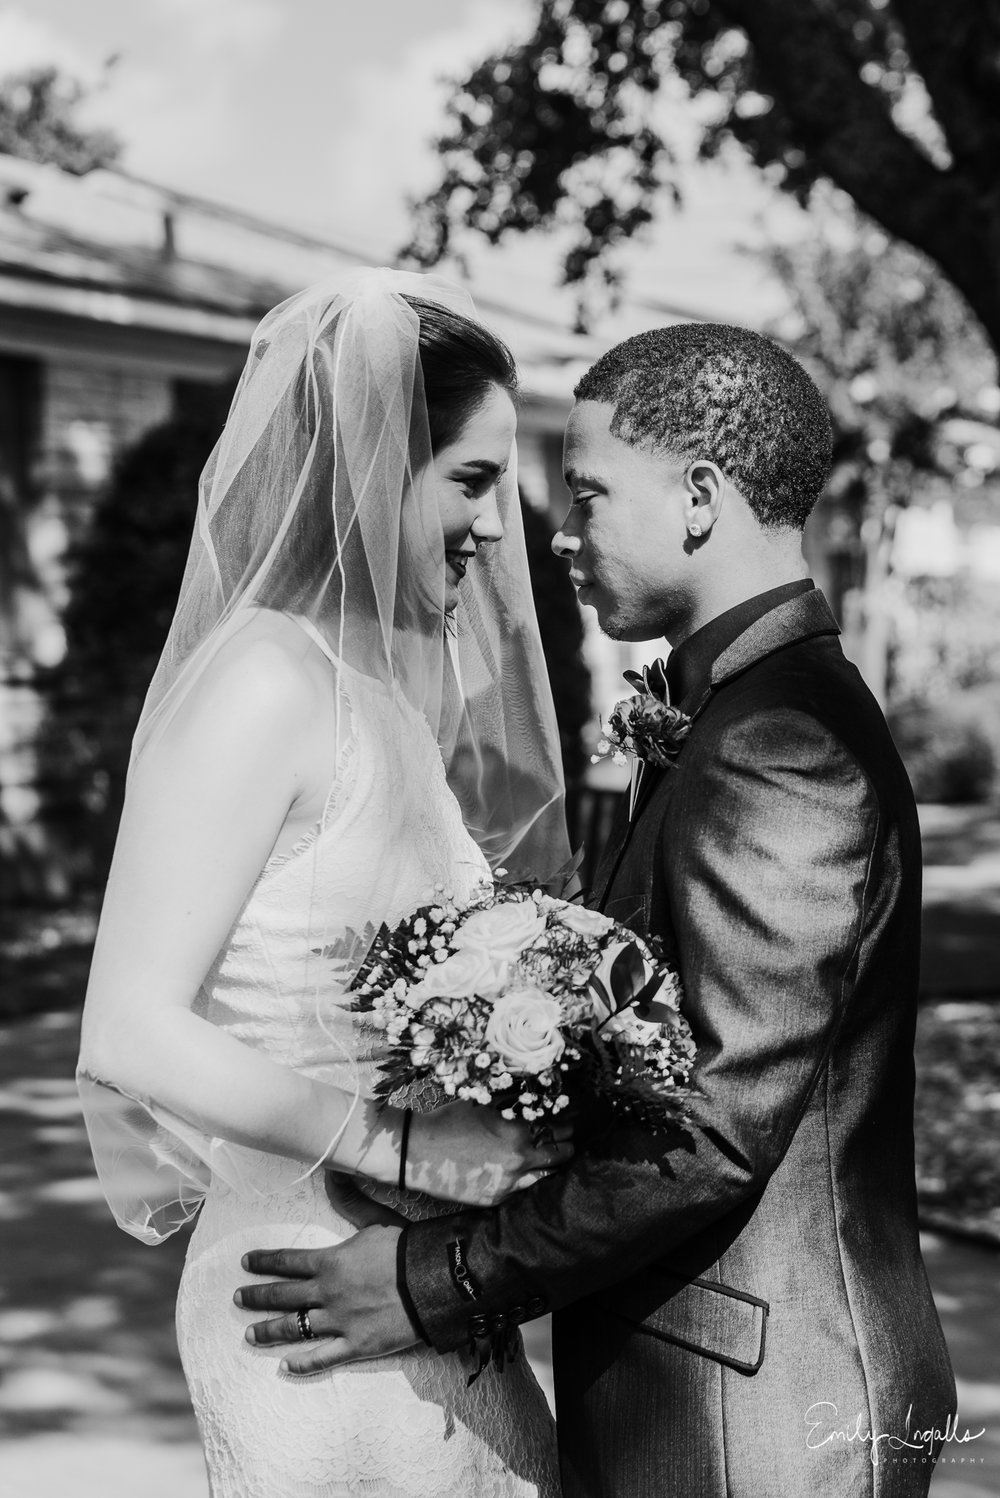 Wedding Photographer_Round Rock Wedding Photographer_Emily Ingalls Photography_Austin Photographer_Pflugerville Wedding Photographer_Georgetown Photographer-4.jpg